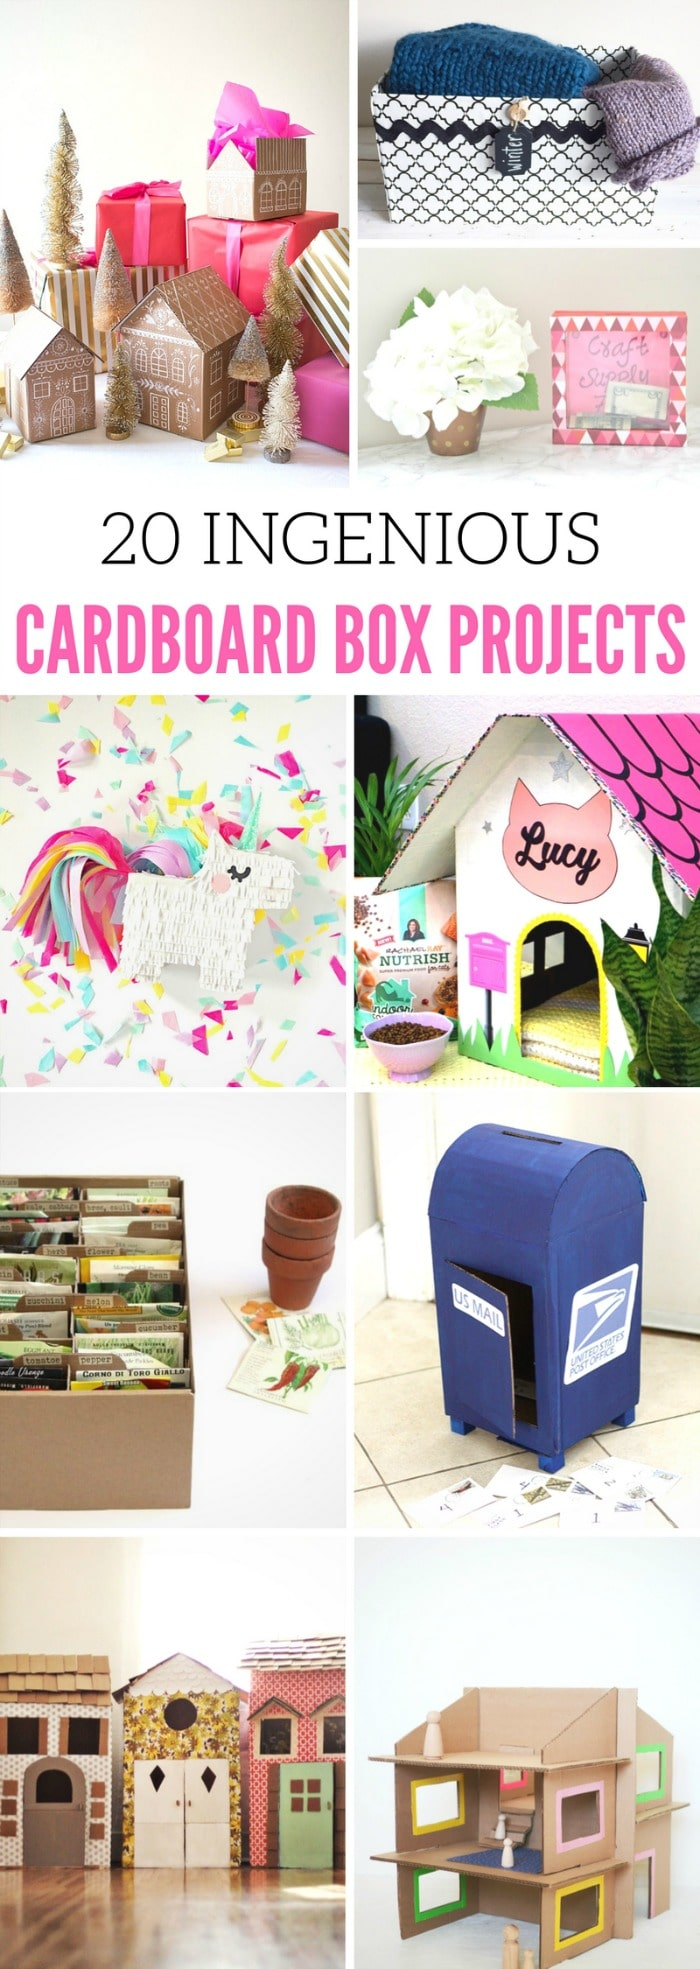 Cardboard Box Projects